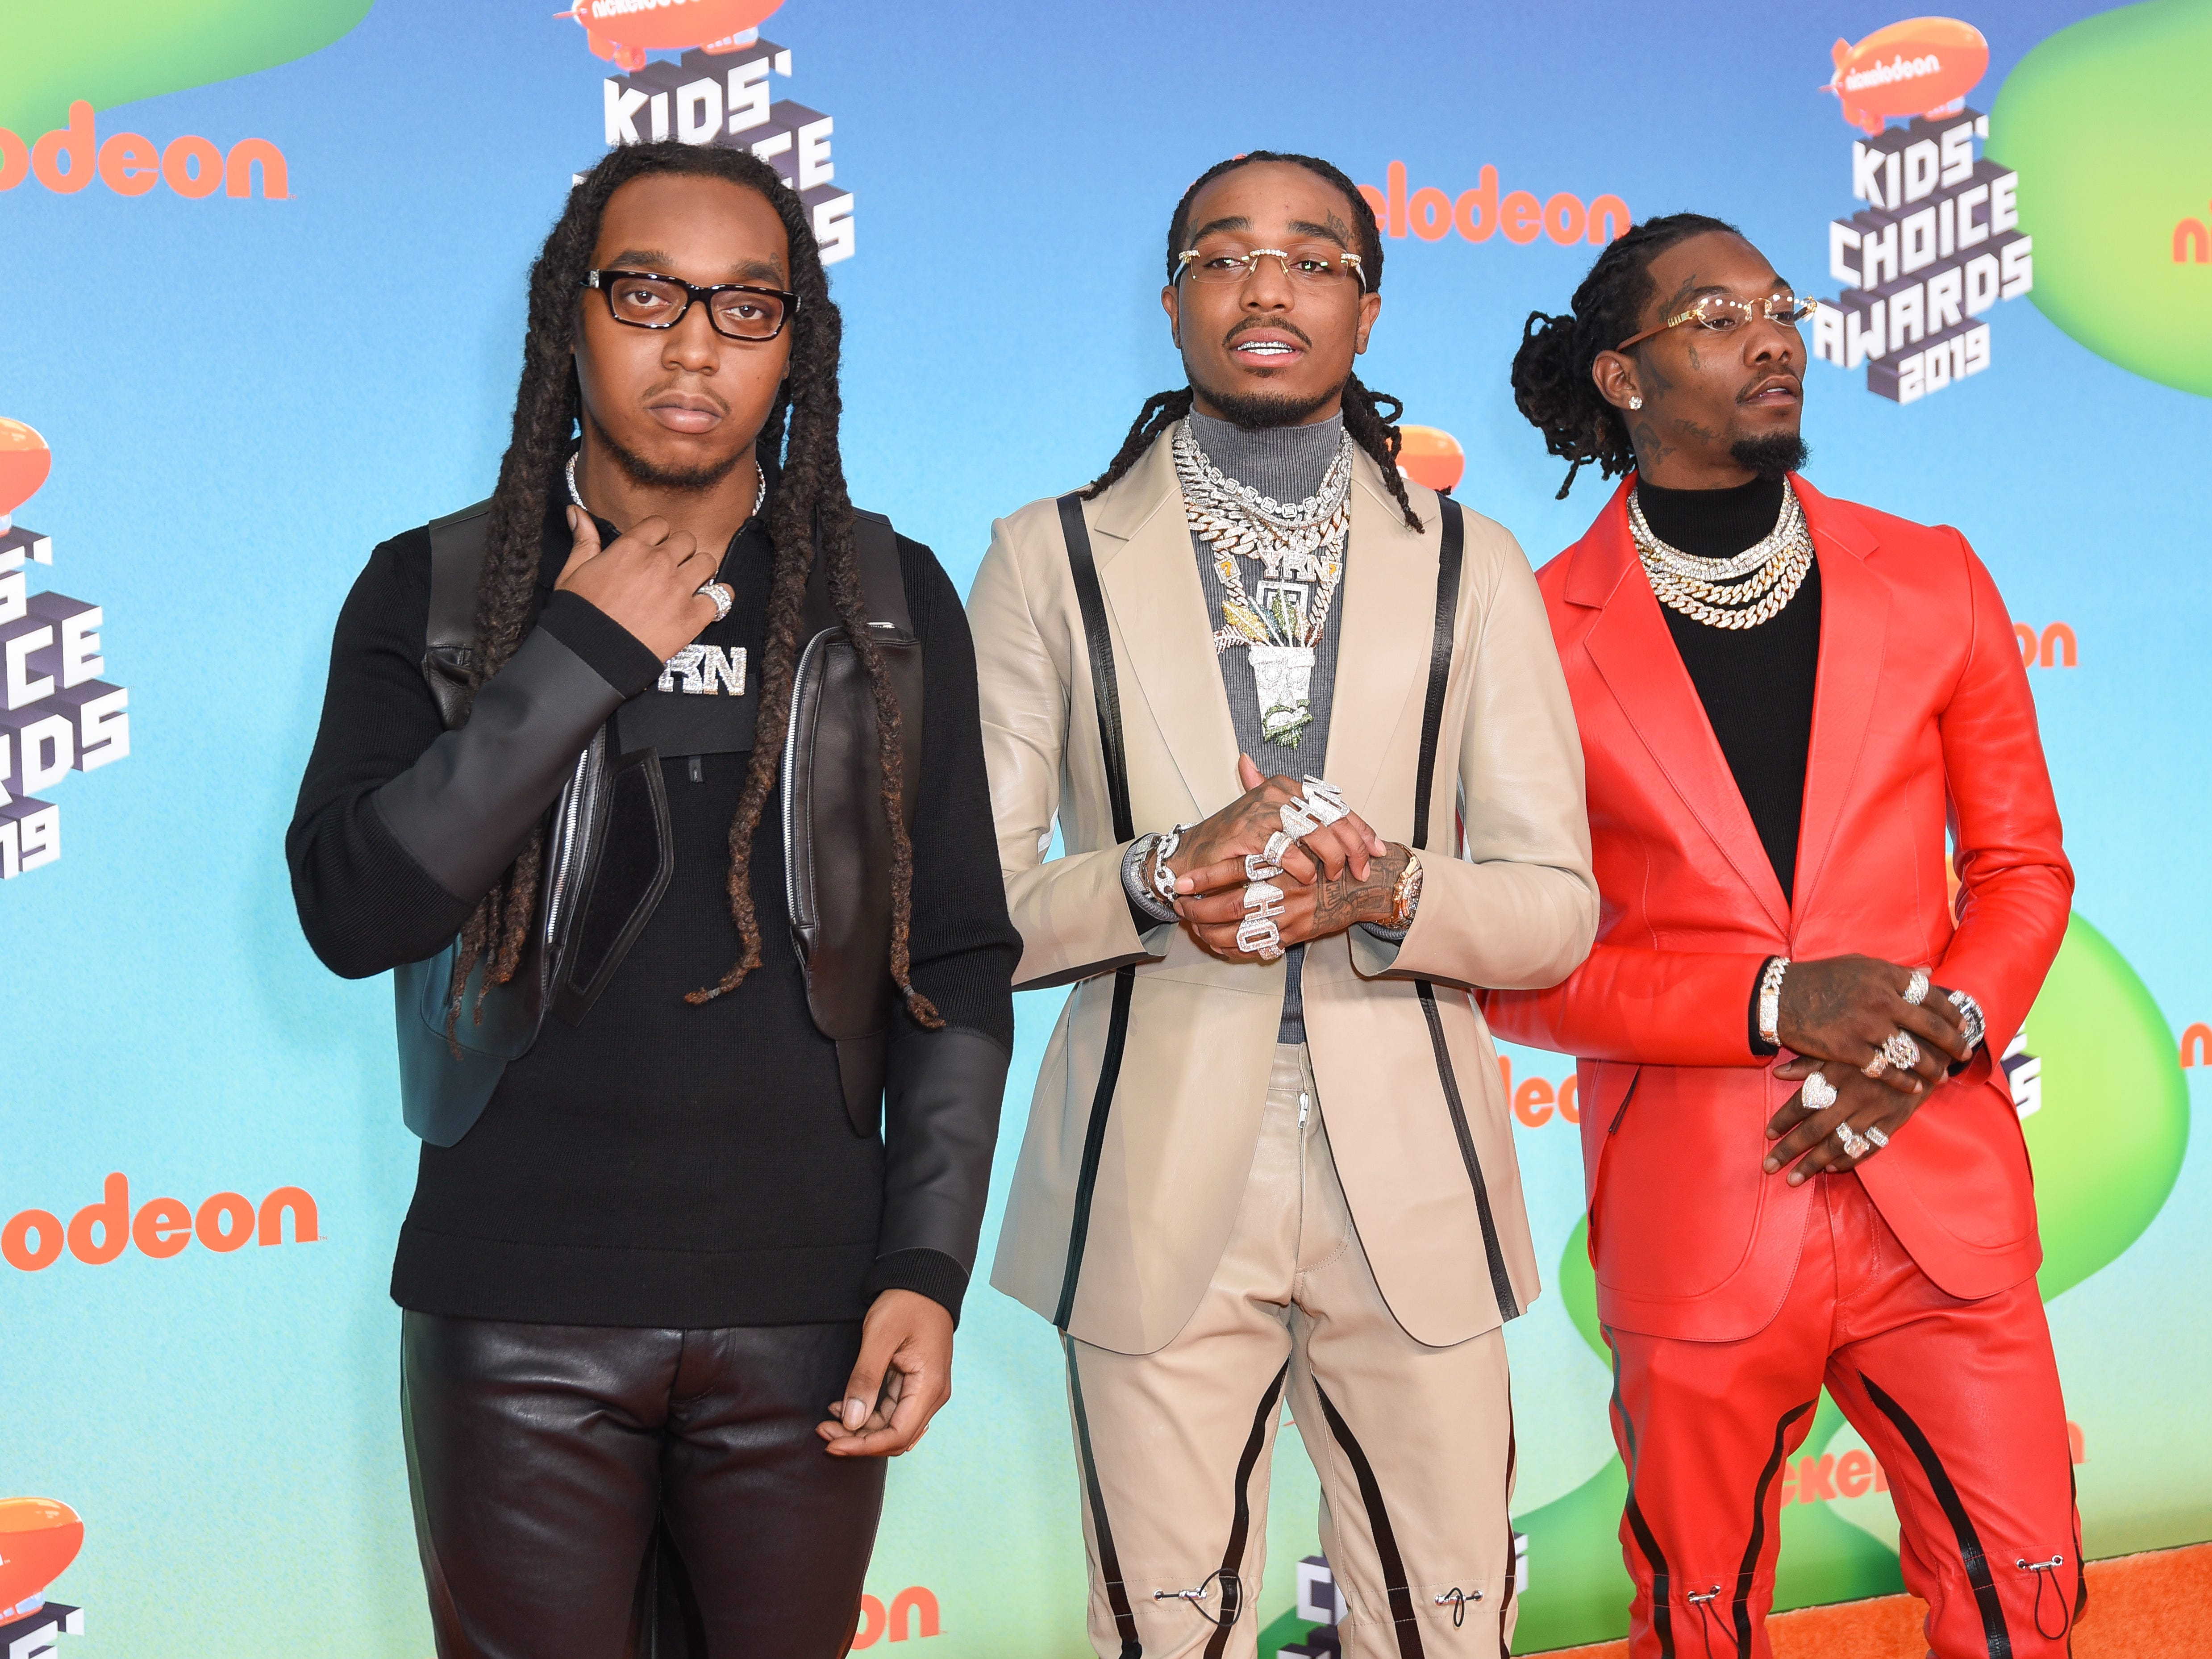 LOS ANGELES, CALIFORNIA - MARCH 23: Offset, Takeoff, and Quavo of Migos attend Nickelodeon's 2019 Kids' Choice Awards  at Galen Center on March 23, 2019 in Los Angeles, California. (Photo by Presley Ann/FilmMagic) ORG XMIT: 775314636 ORIG FILE ID: 1137886062